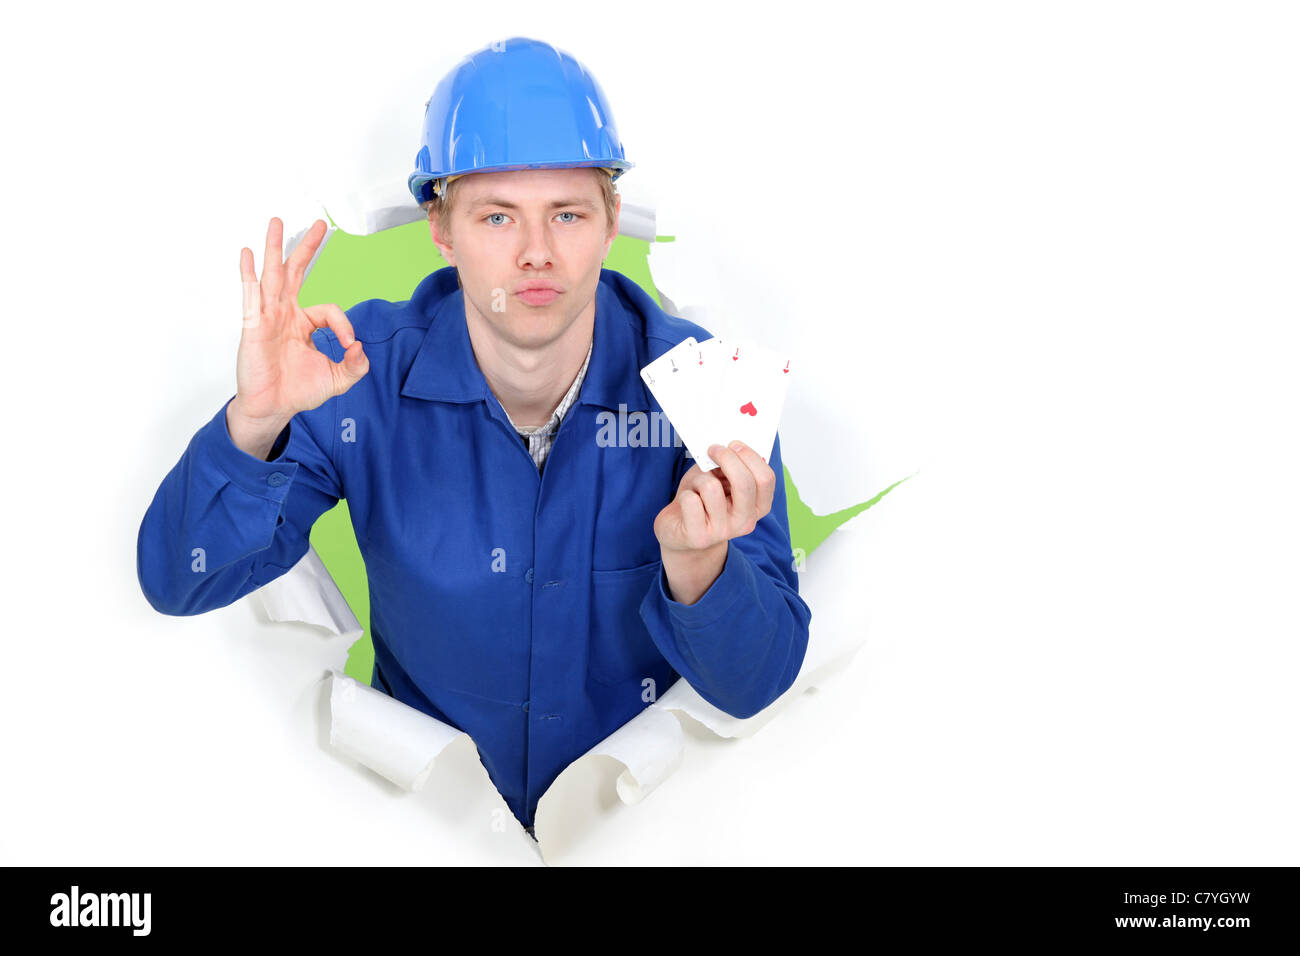 Tradesman giving the a-ok sign and holding up cards - Stock Image